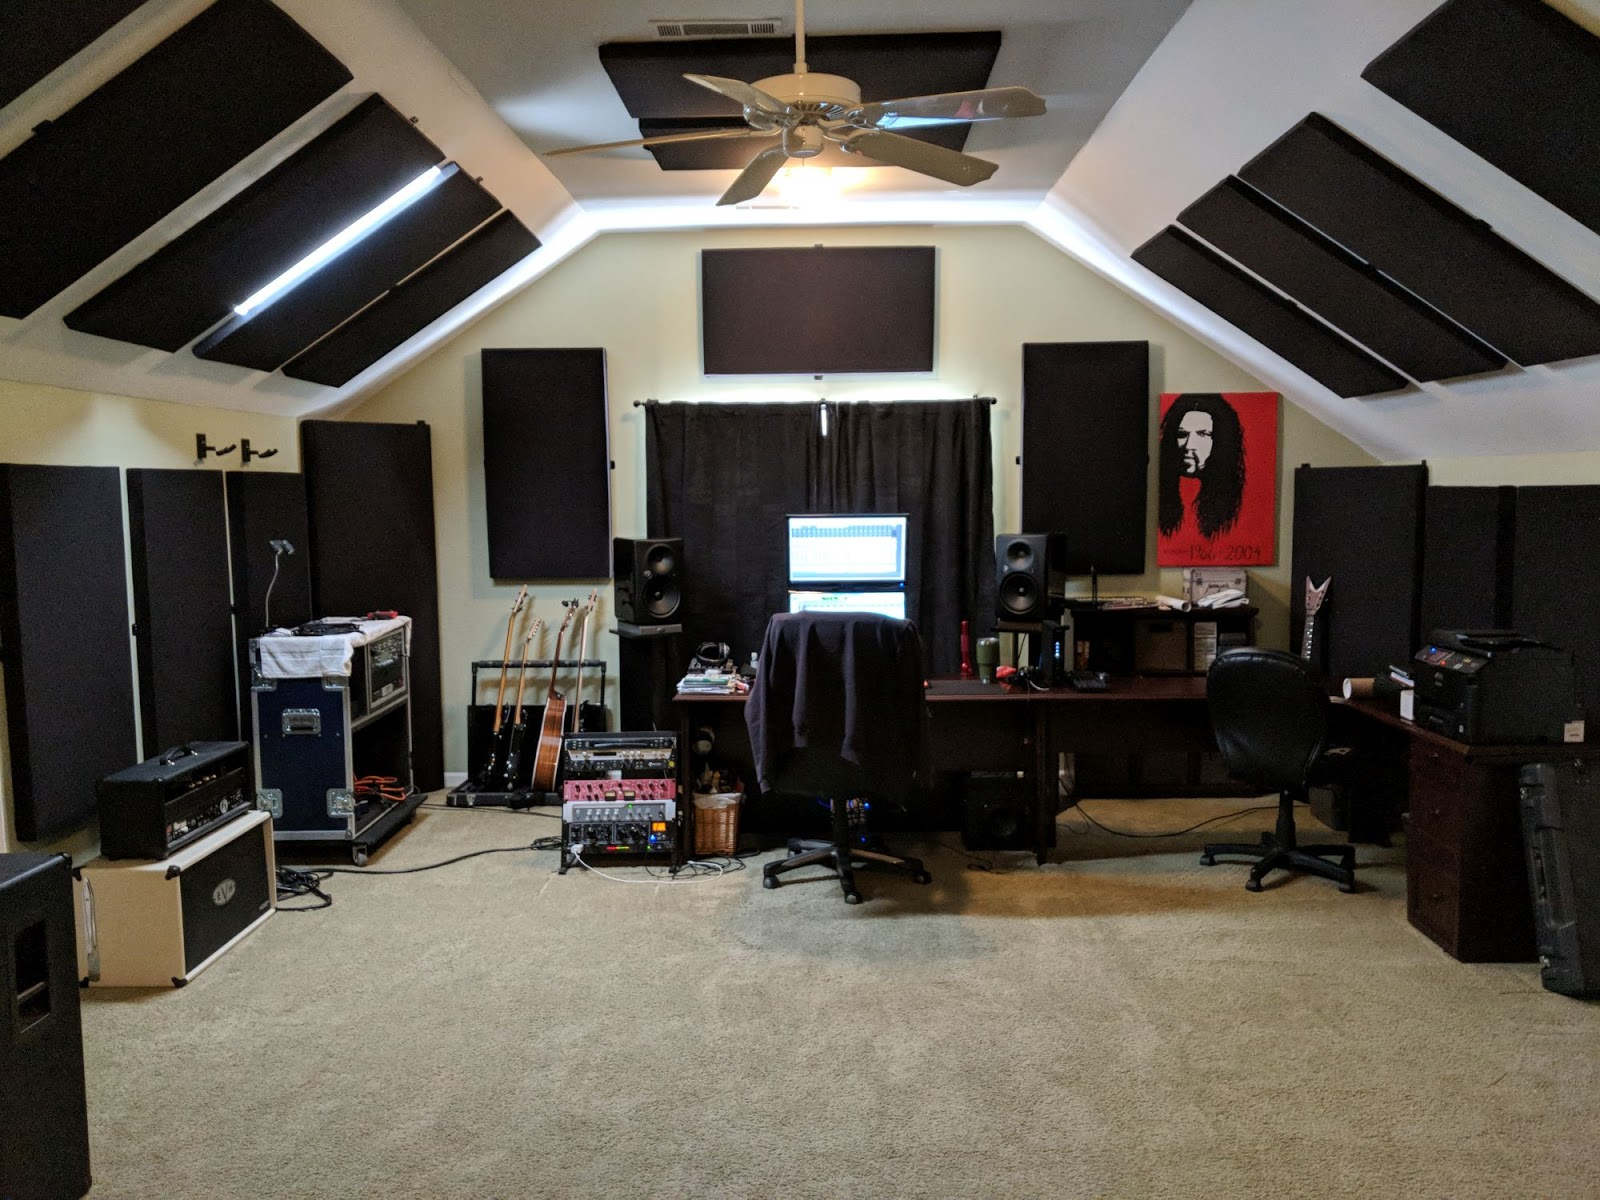 A picture of a home studio with computers, speakers, guitars, and guitar amps.